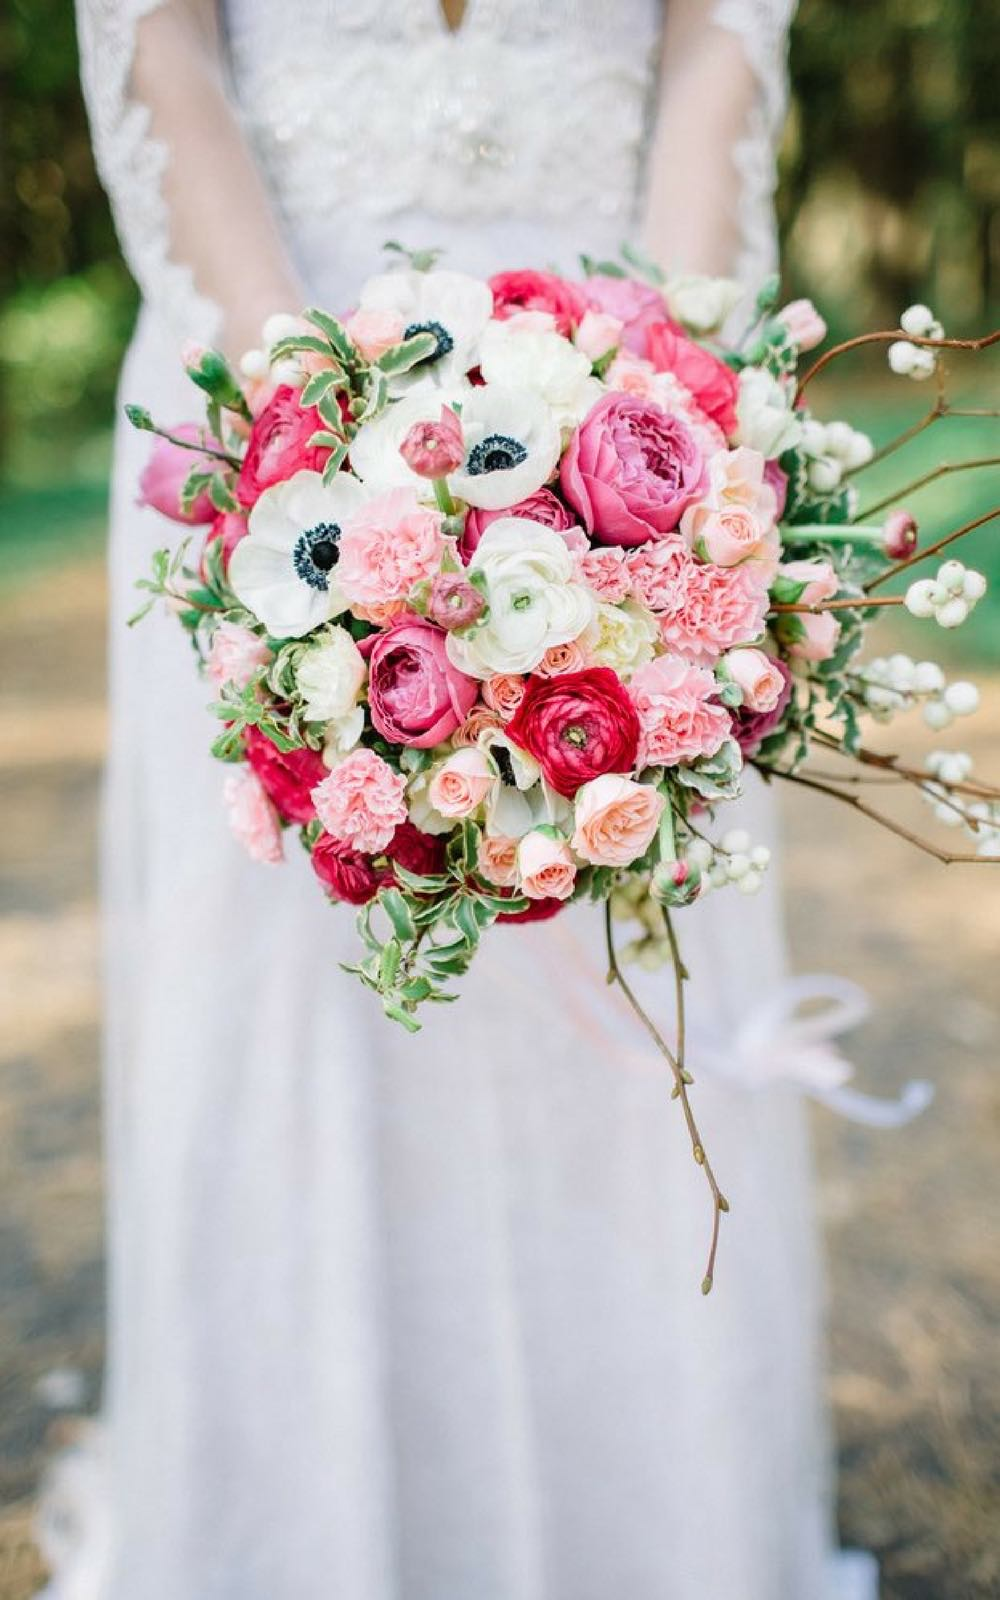 Fifty flowers review how i did my own wedding flowers with pictures how to do your own wedding flowers make wedding bouquet steps for diy flowers izmirmasajfo Choice Image